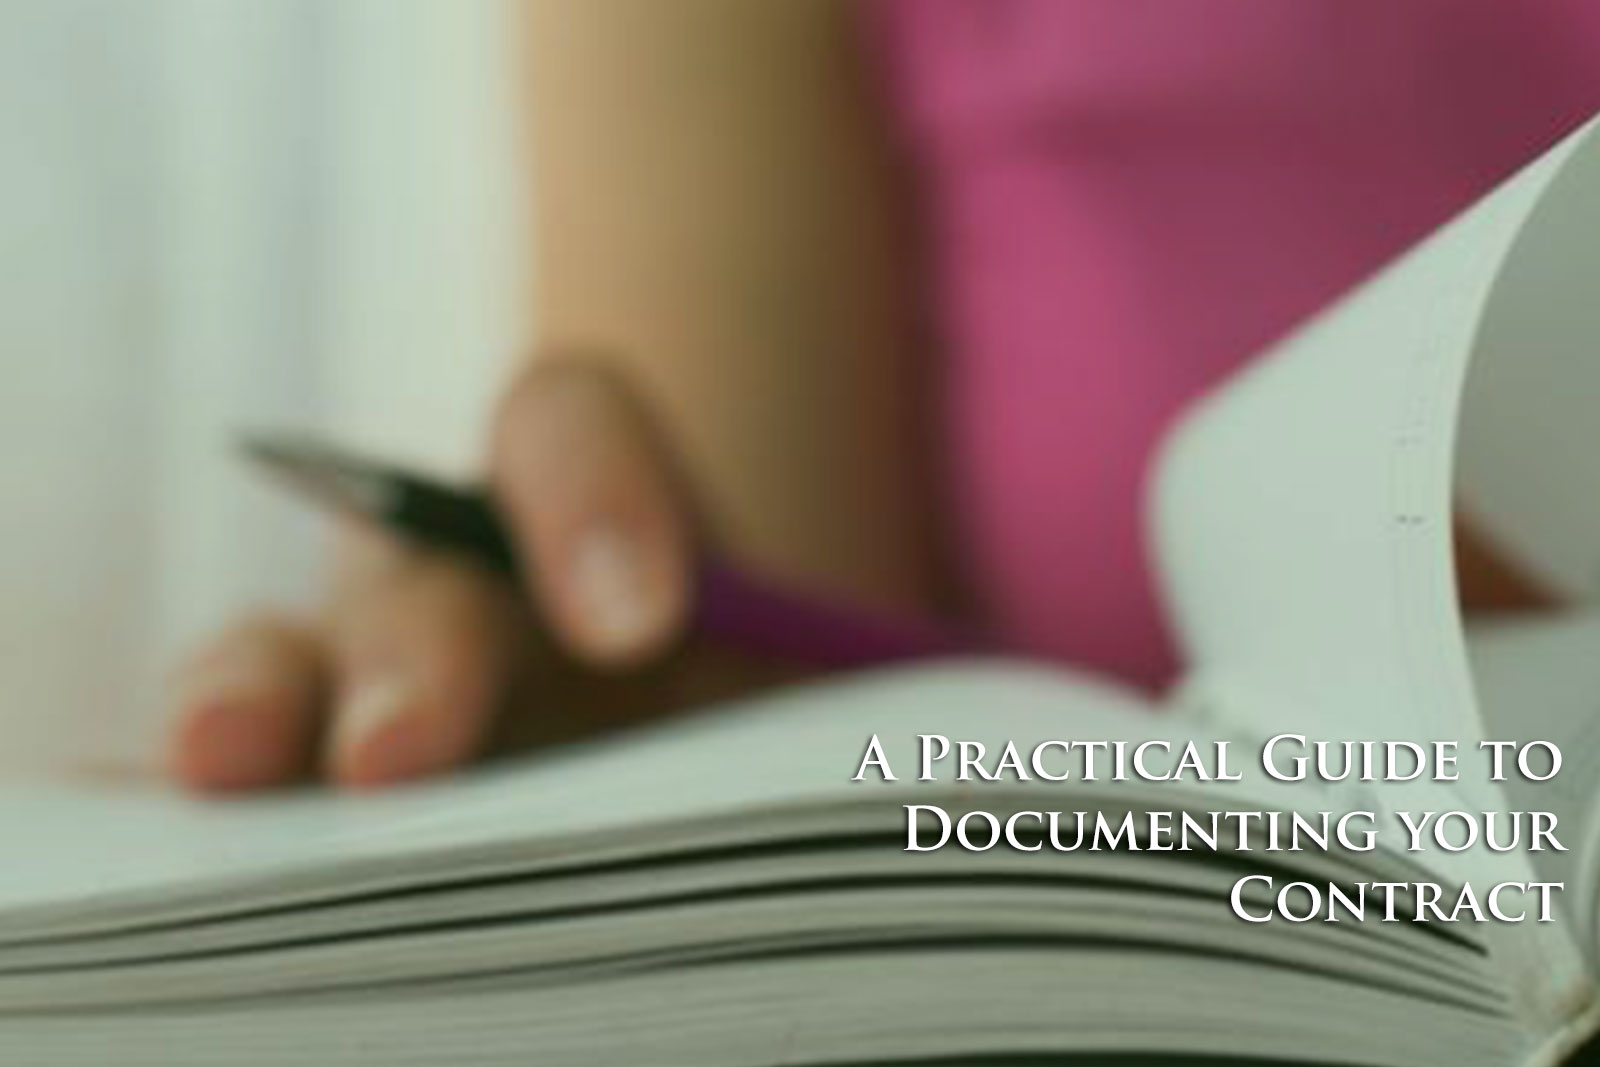 A Practical Guide to Documenting your Contract